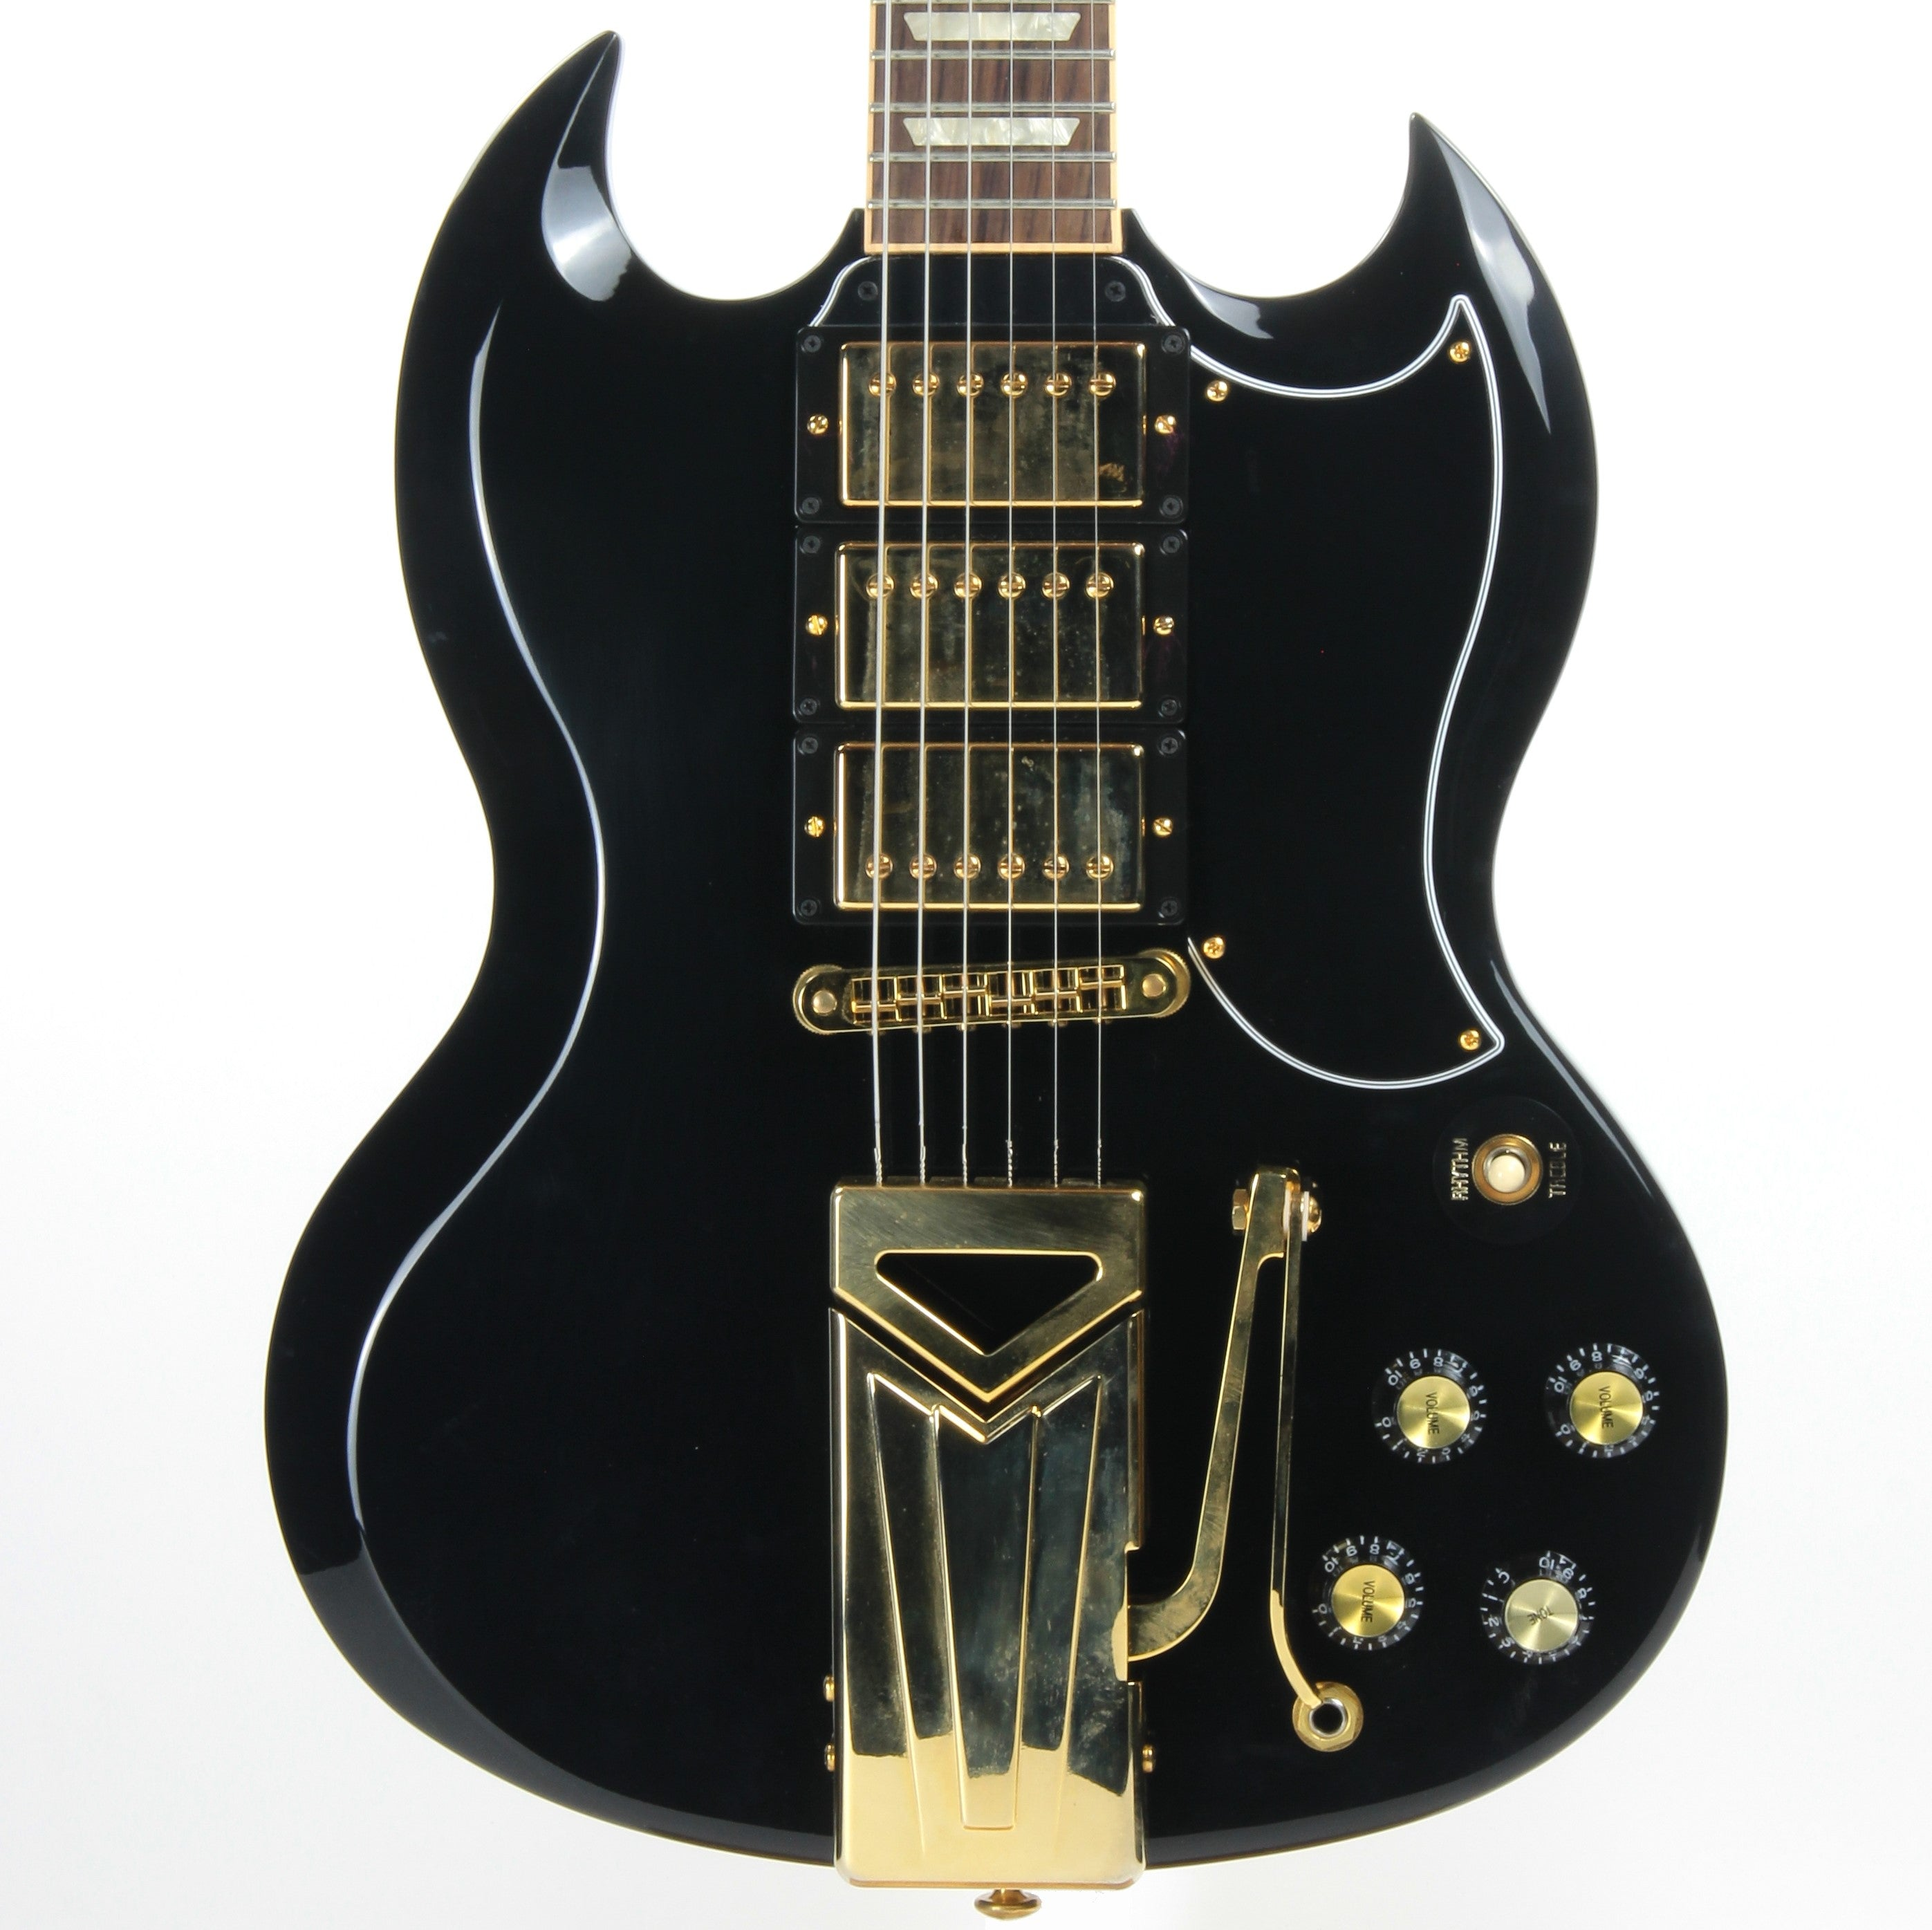 2015 Gibson Limited Edition SGS3 Ebony Black 3 Pickup, Sideways Vibrola - SG Les Paul Standard Custom